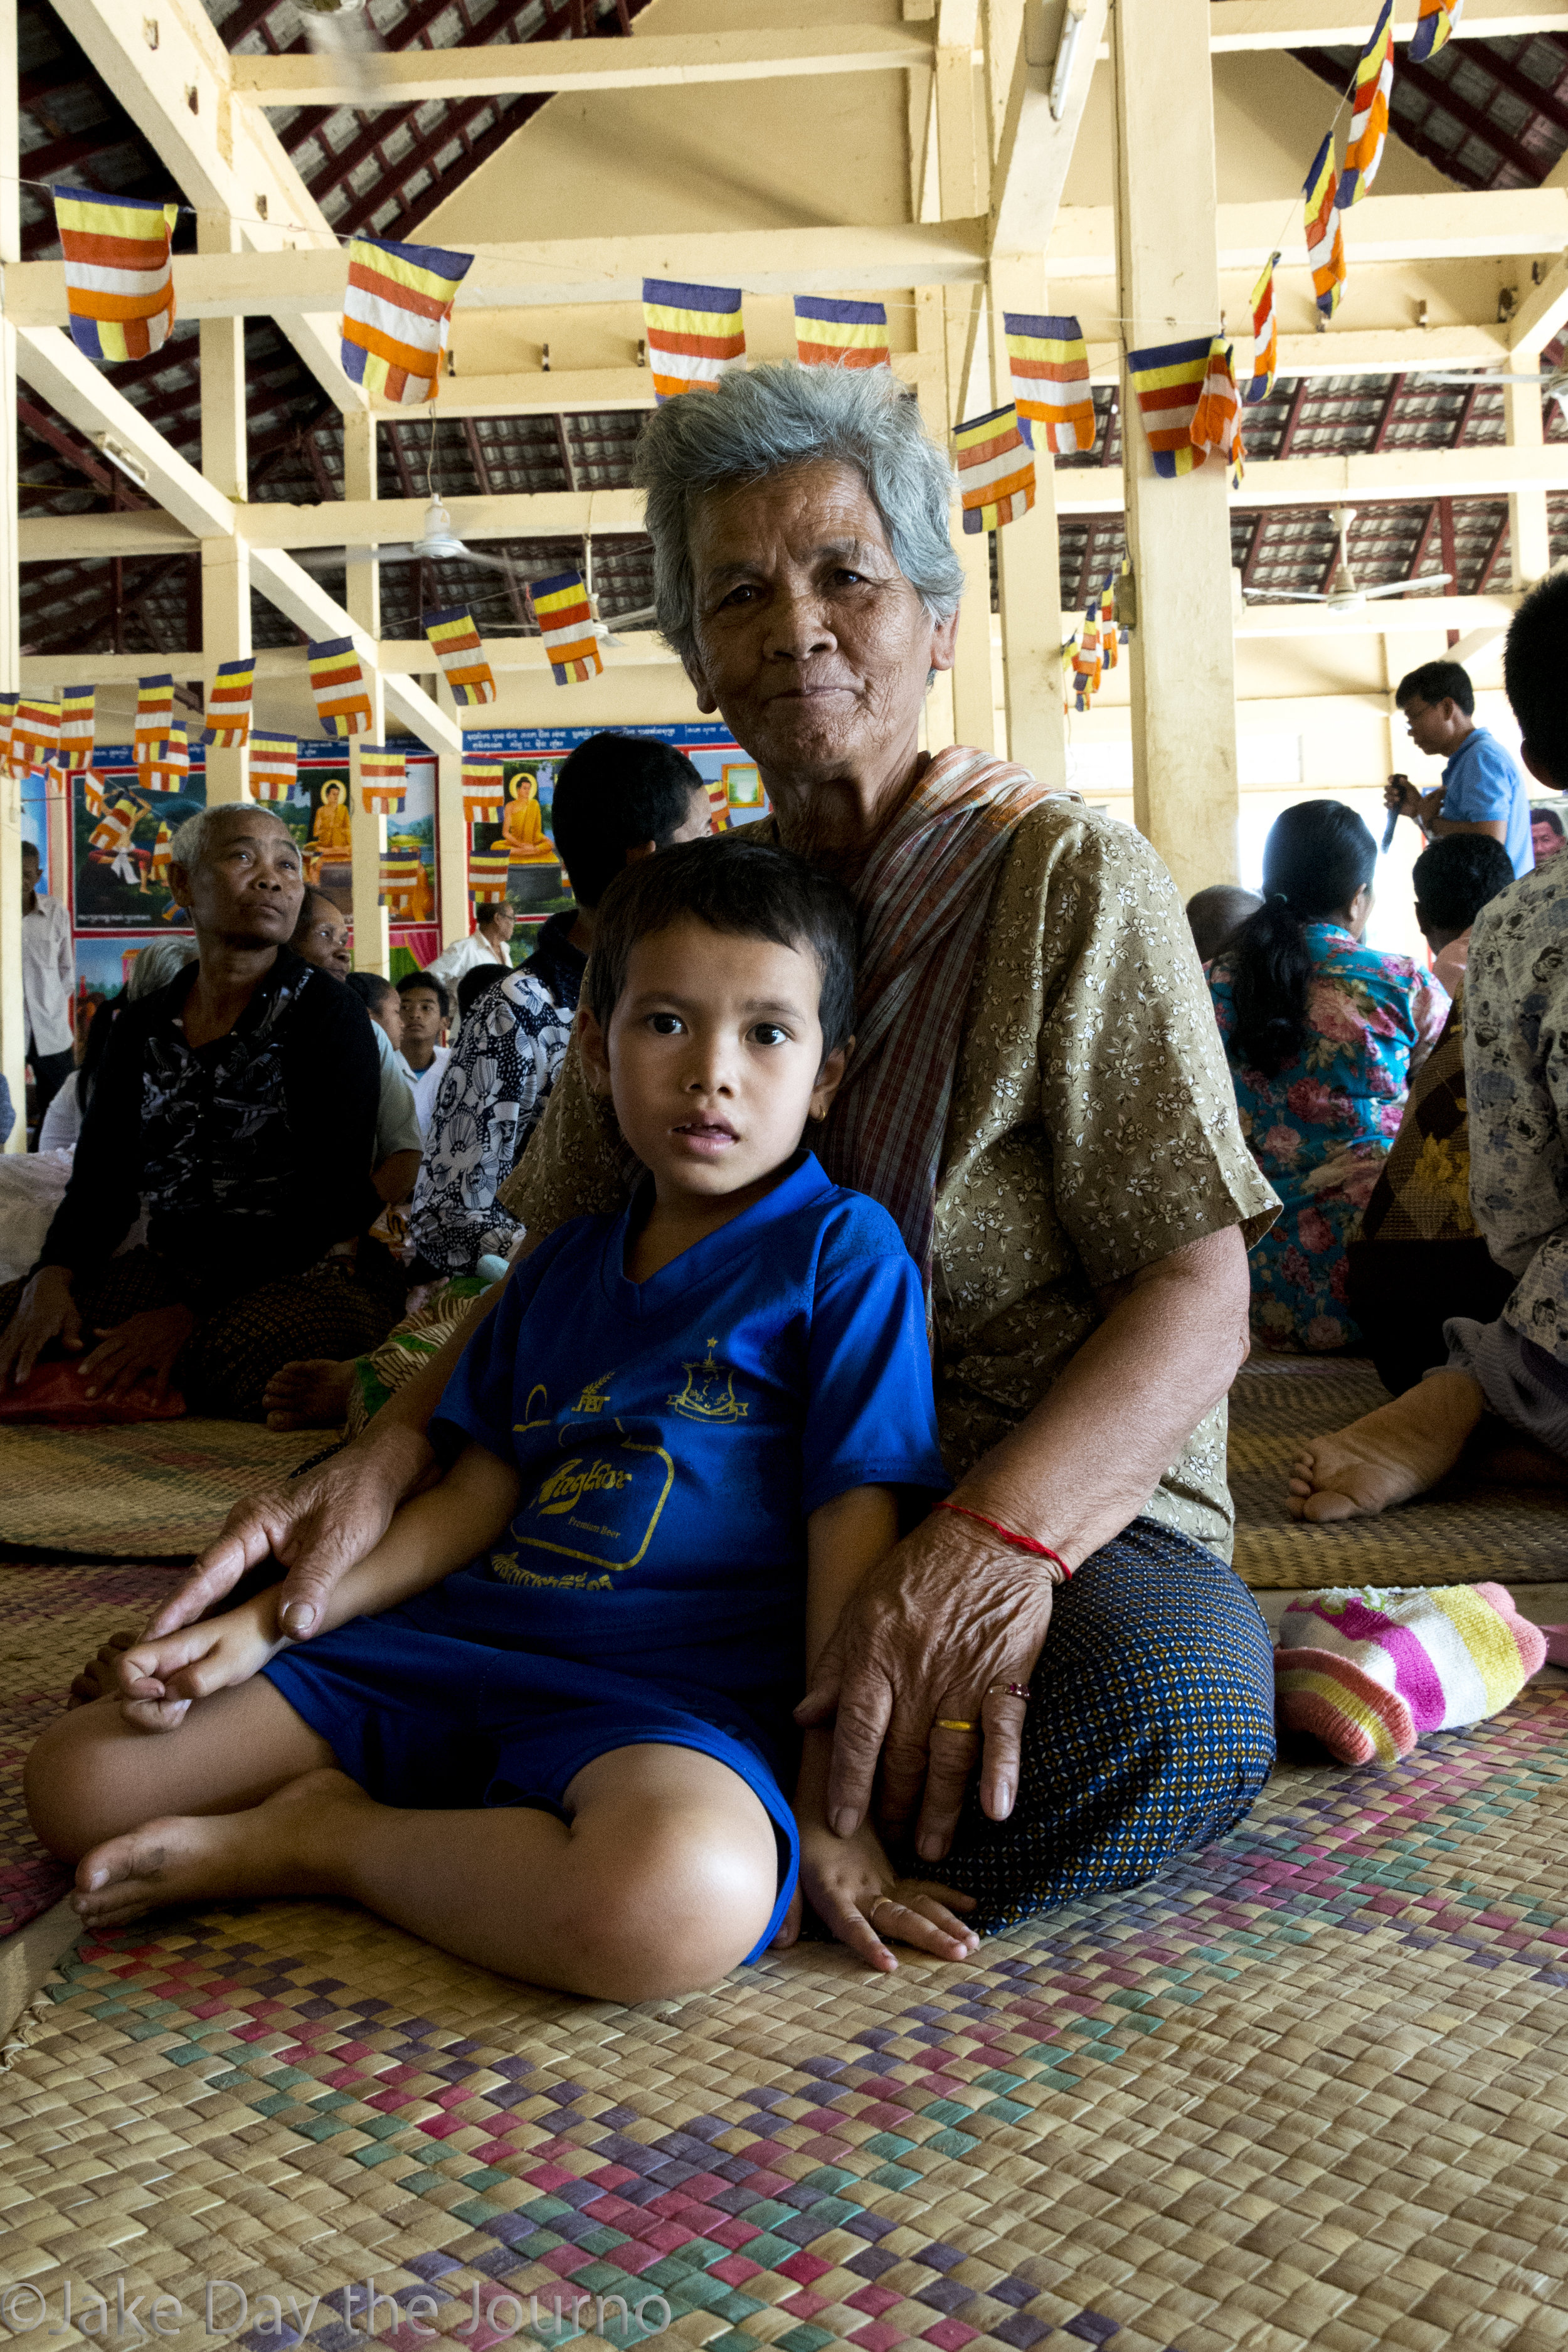 Prak Imm, 77, and her grandson wait for the testimonial ceremony to begin, organised by the Transcultural Psychosocial Organisation for the 'Healing and Reconciliation for Victims of Torture of Khmer Rouge Trauma' program at Ta Ann village, Ta Ann commune, Kralanh district, Siem Reap province on 18/01/18 by Jake Day. The ceremony brings the young and the old together to heal old wounds and pass on history.